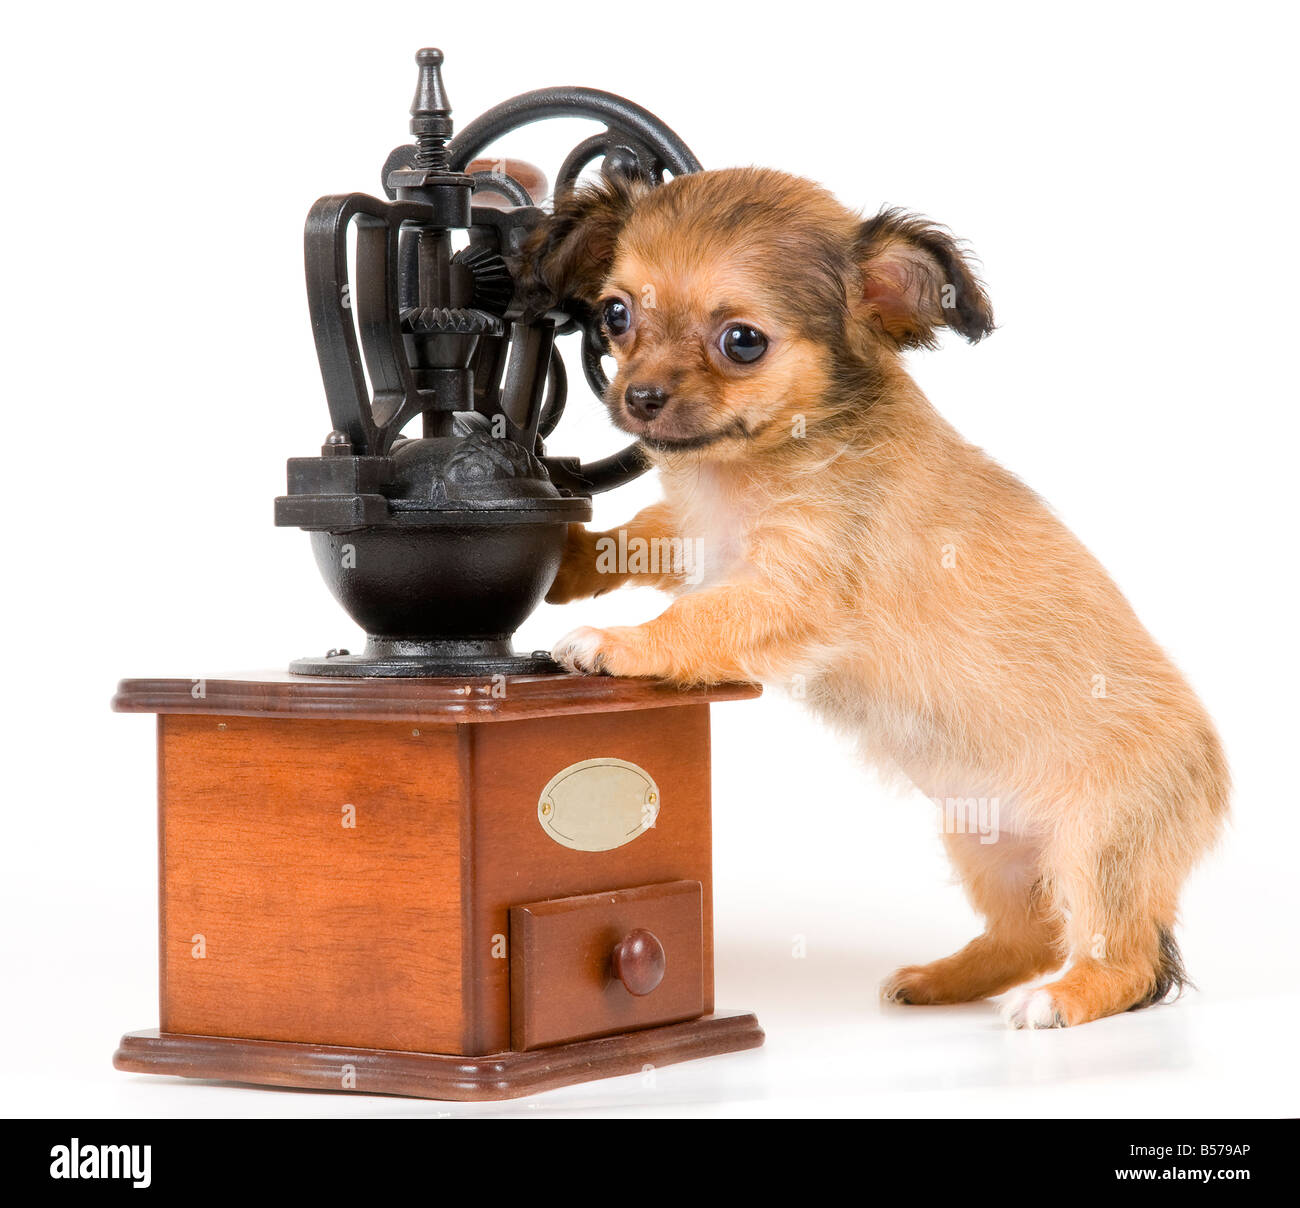 The puppy chihuahua in studio - Stock Image